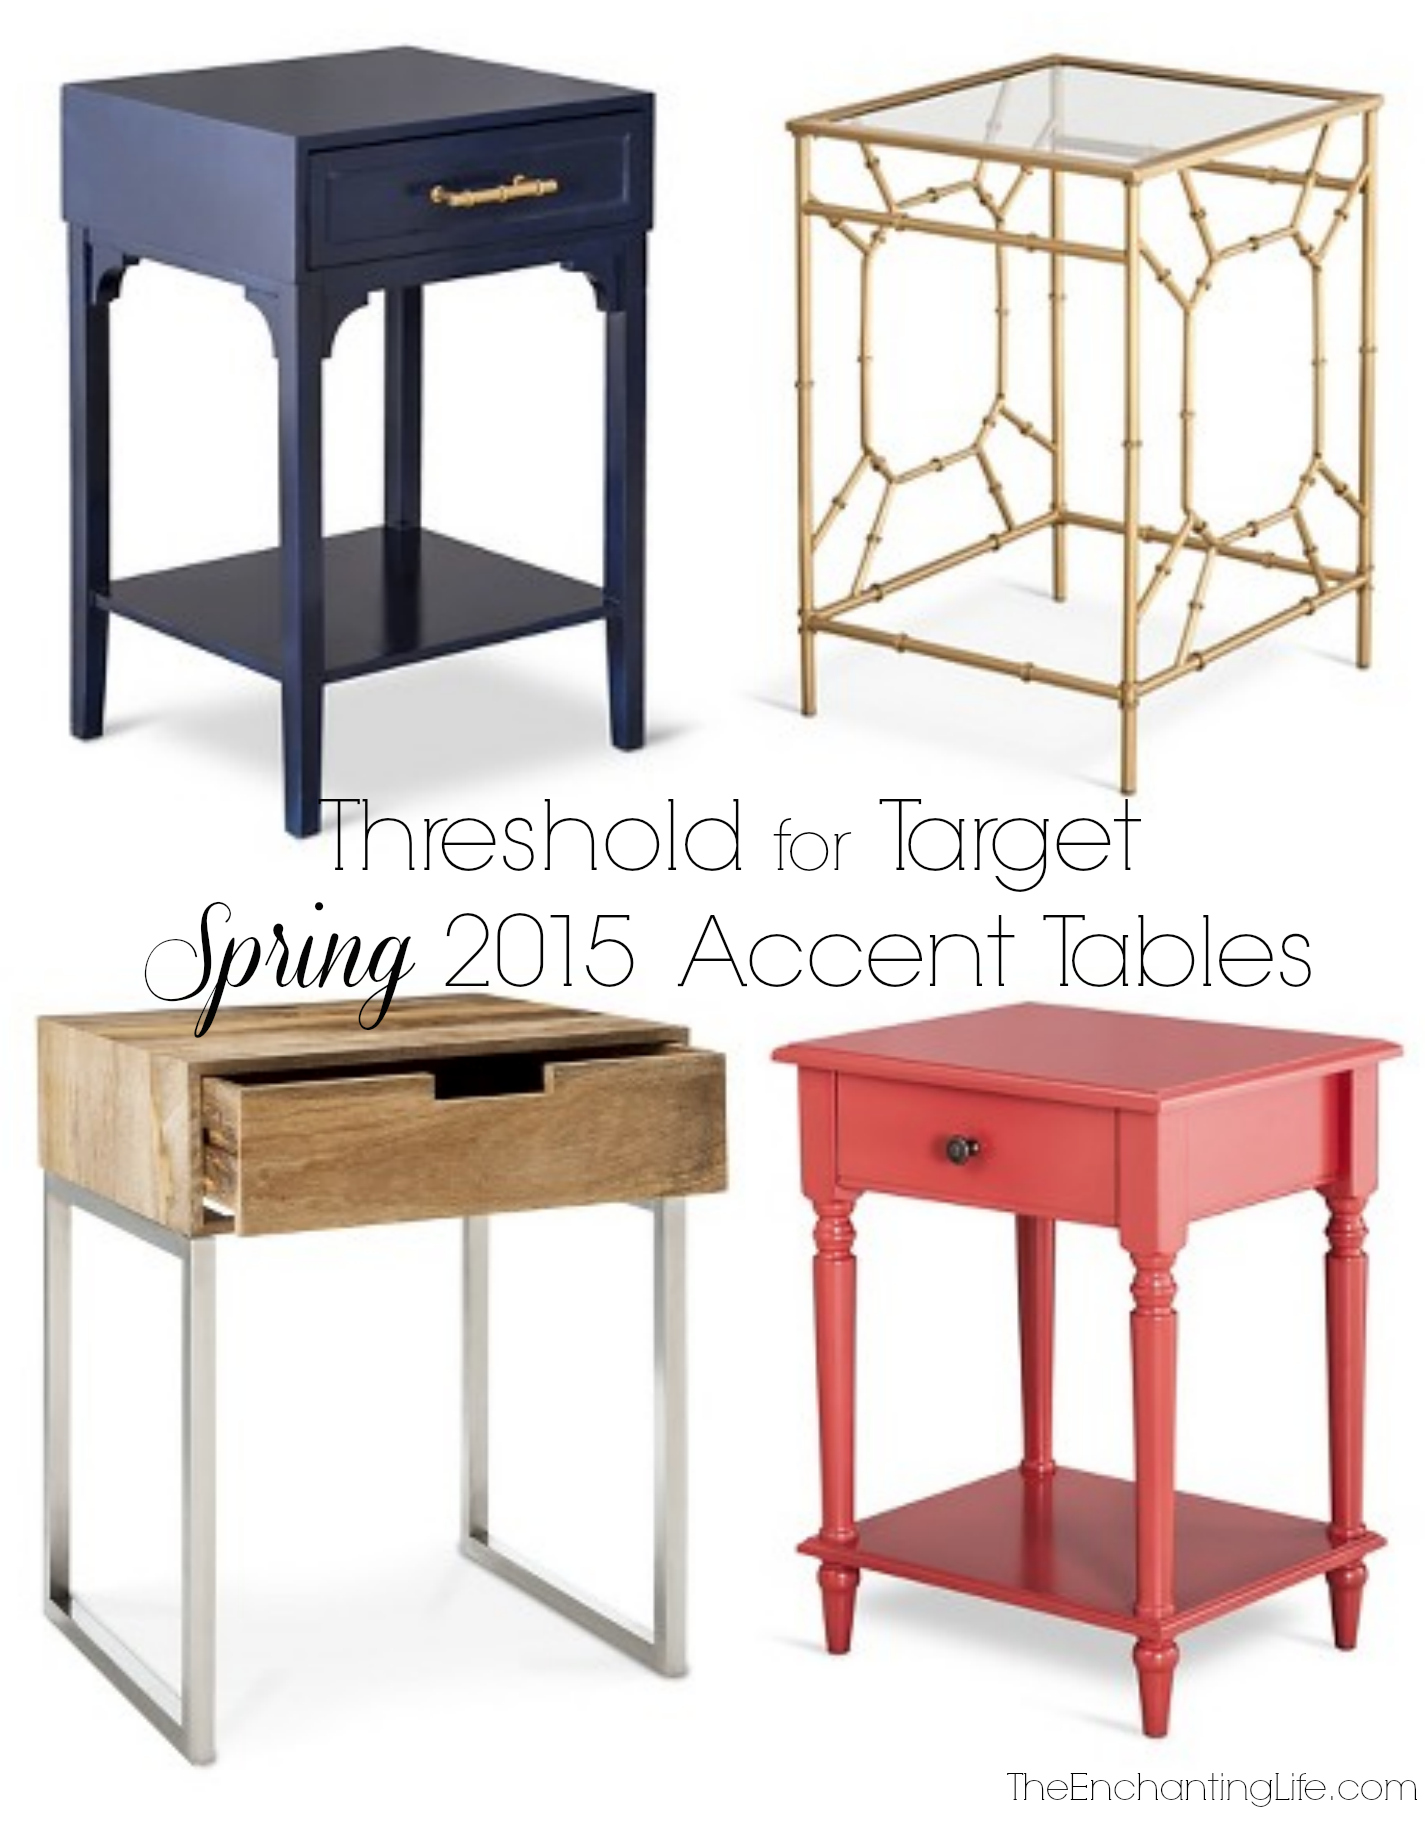 Beau Accent Tables Threshold For Target Spring 2015